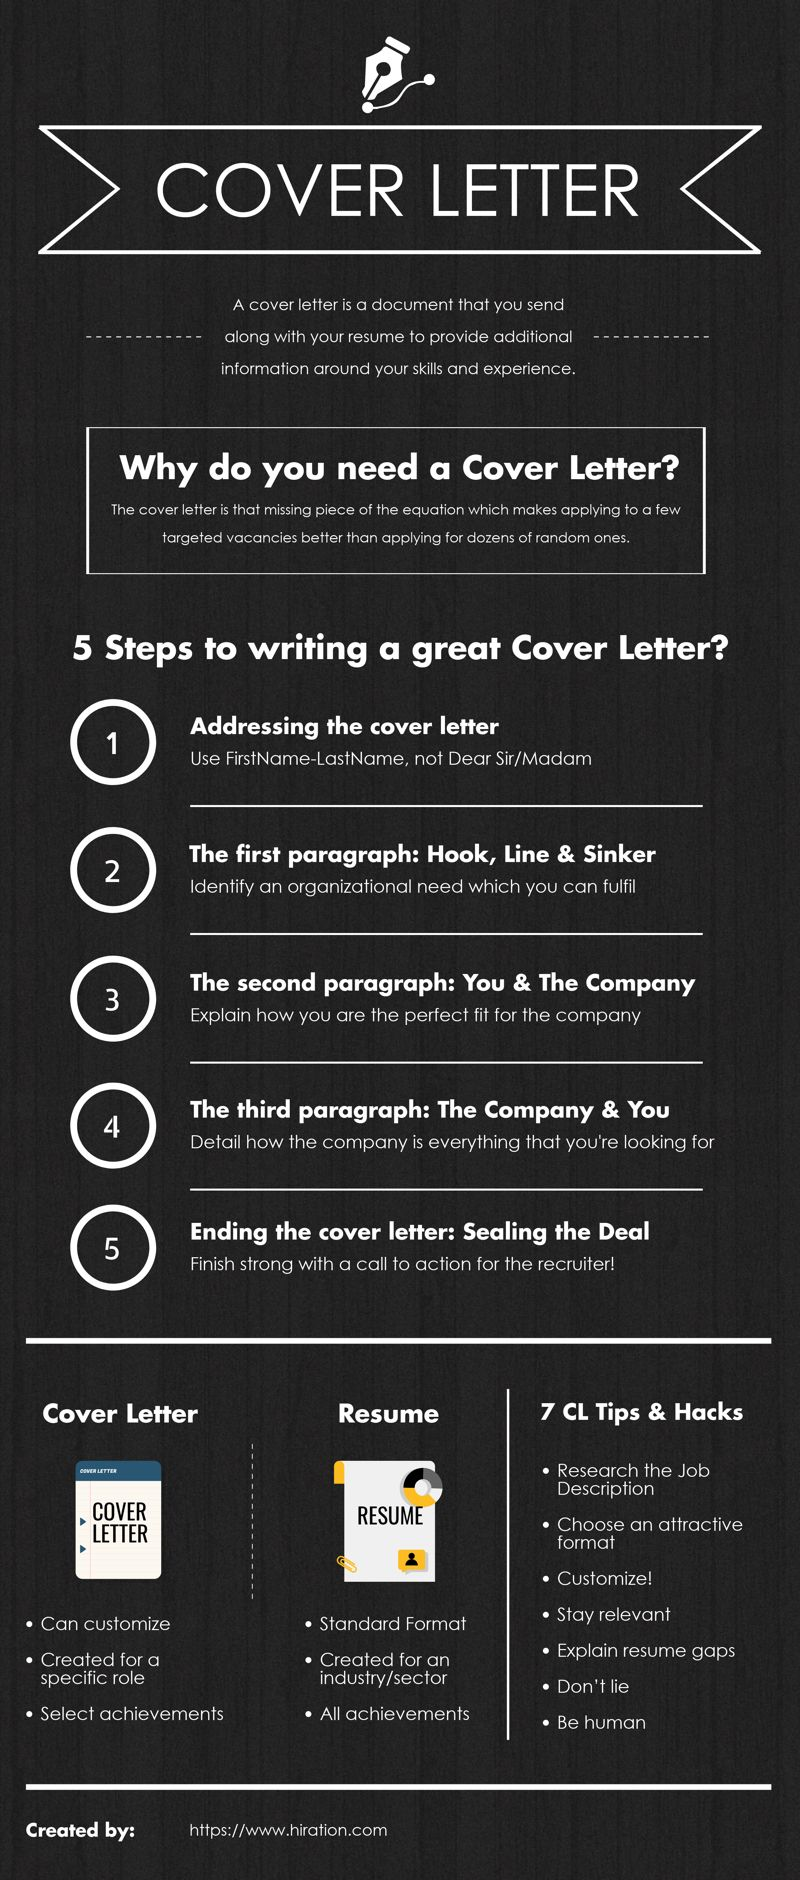 cover-letter-infographic